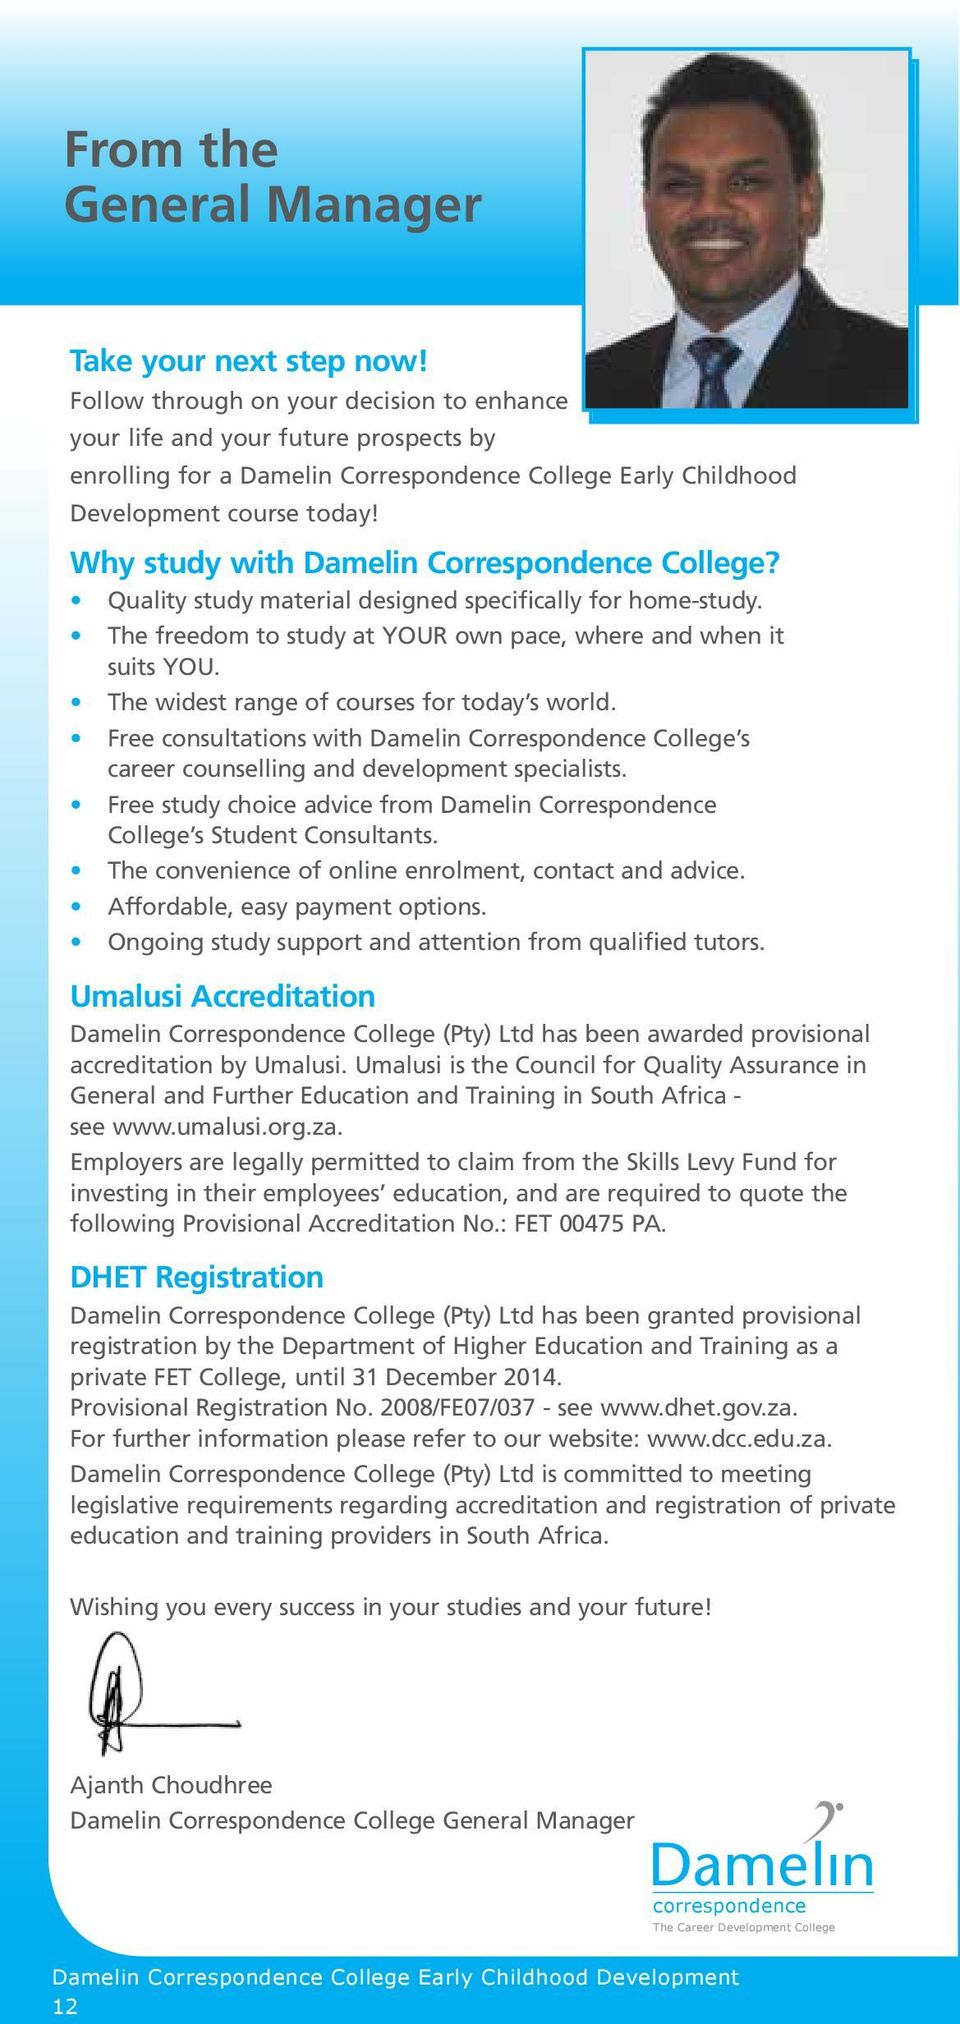 Why study with Damelin Correspondence College? Quality study material designed specifically for home-study. The freedom to study at YOUR own pace, where and when it suits YOU.